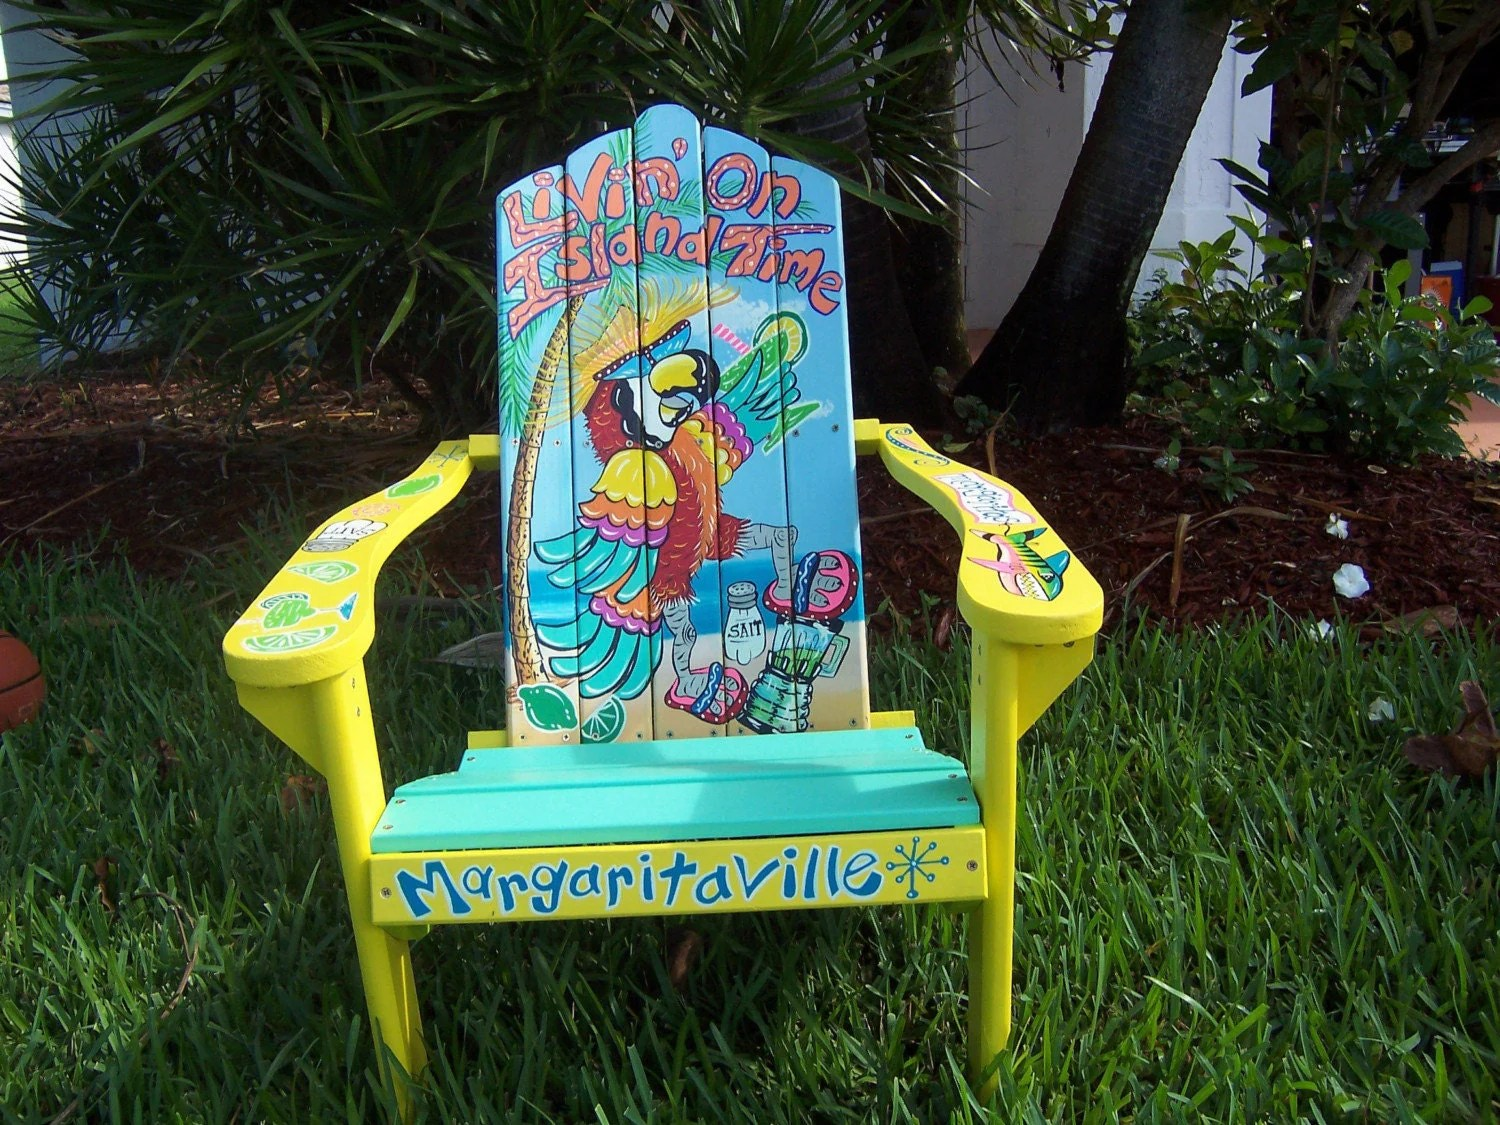 Margaritaville Adirondack Chairs Tropical Adirondack Chair Handcrafted Hand Painted Livin 39